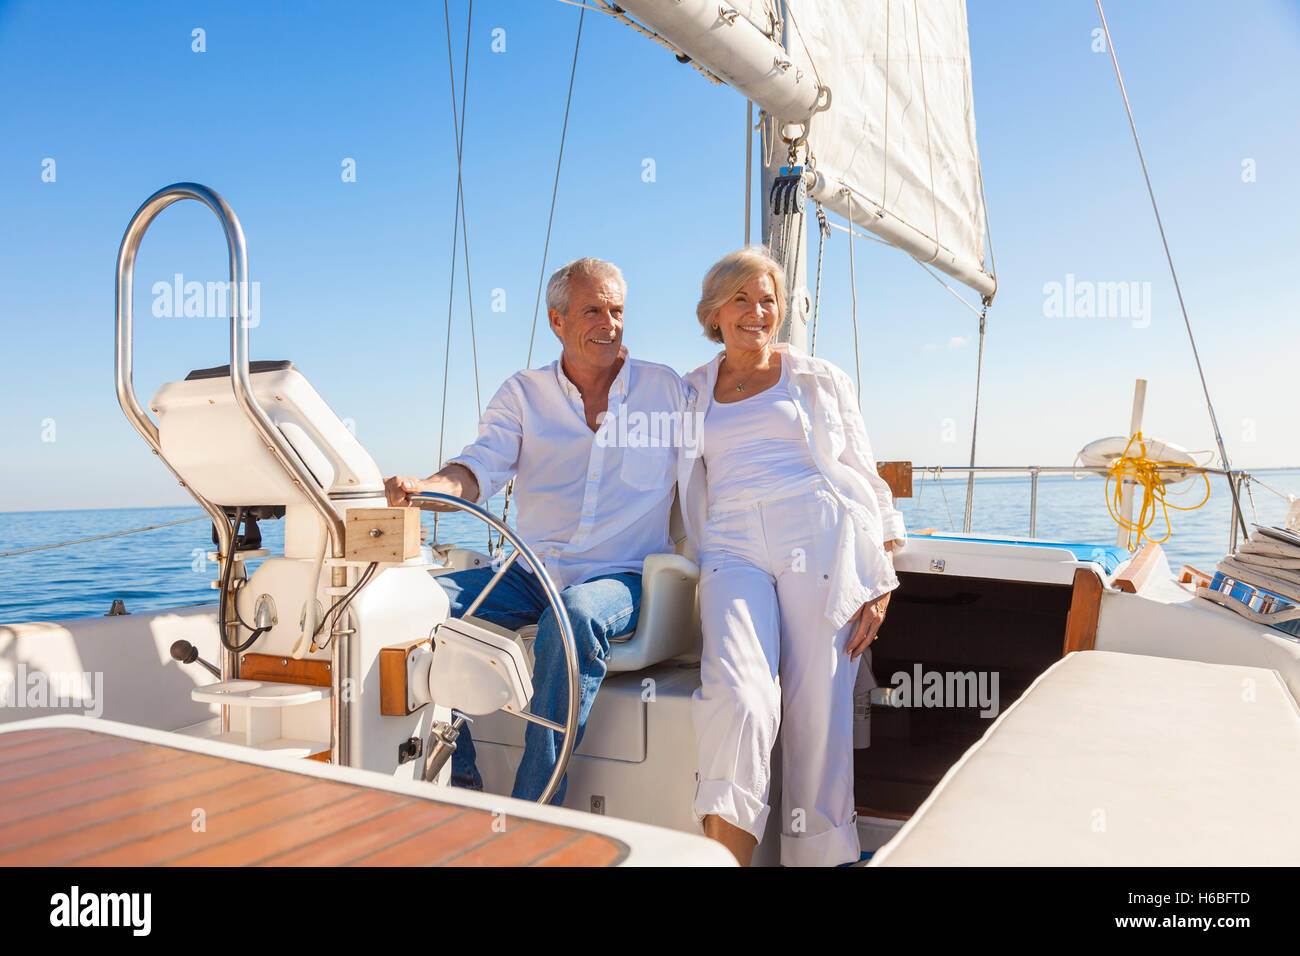 A happy senior couple laughing having fun sailing at the wheel of a yacht or sail boat on a calm blue sea - Stock Image